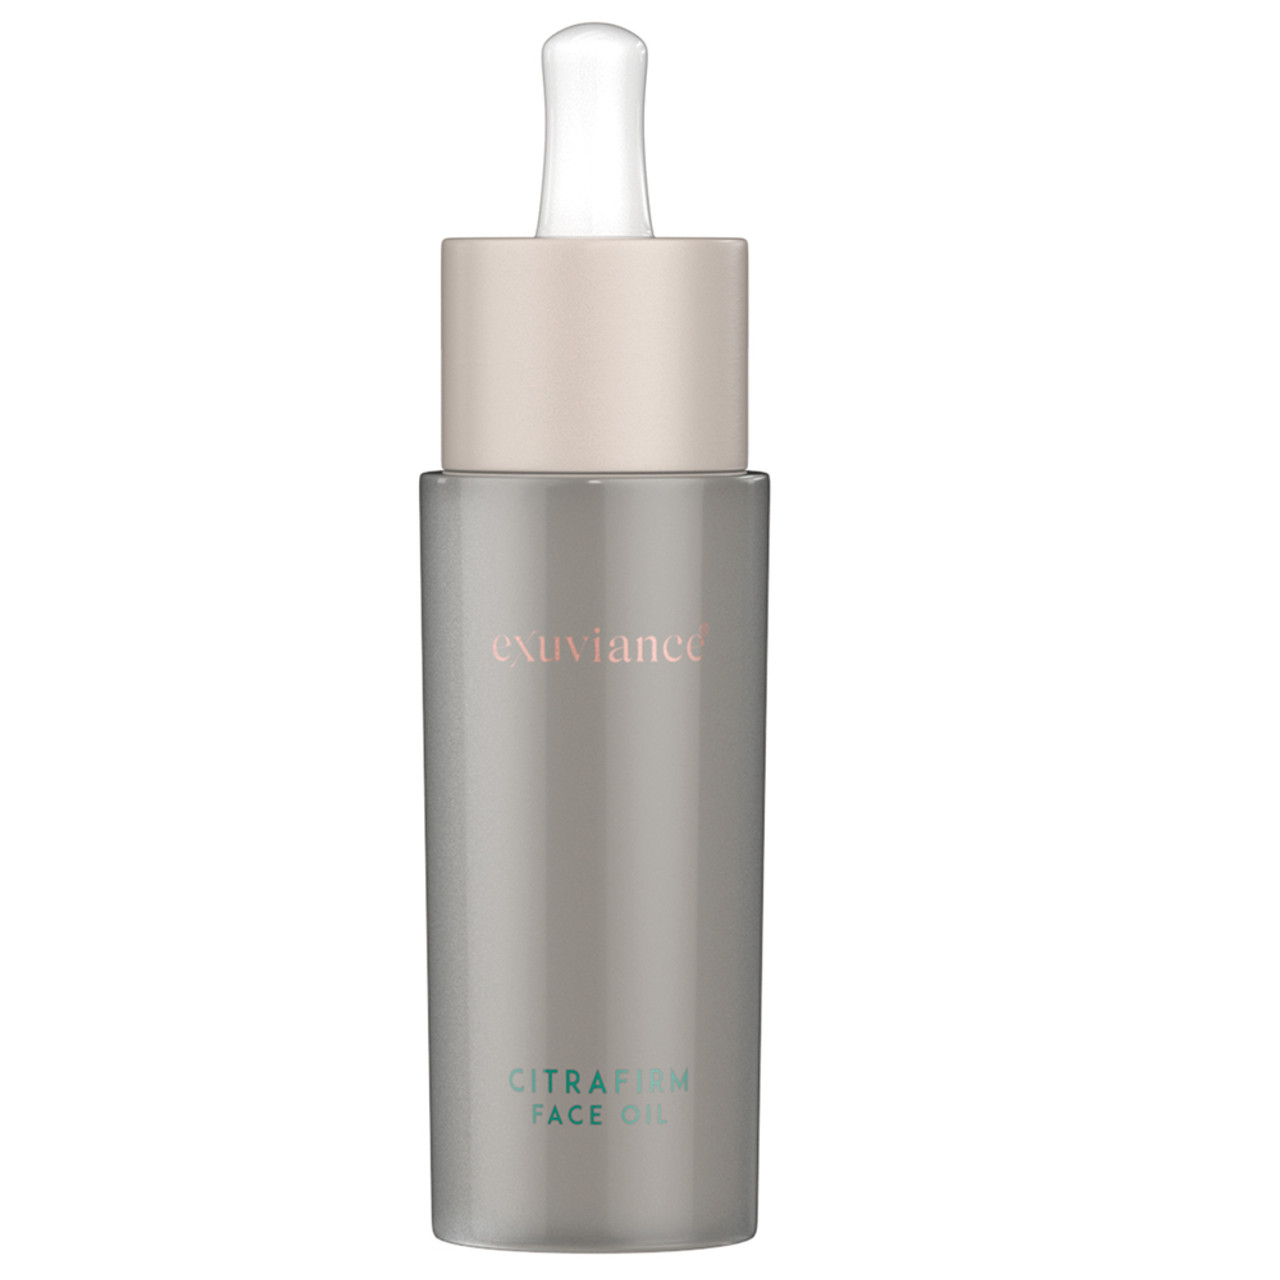 Exuviance Citrafirm Face Oil BeautifiedYou.com